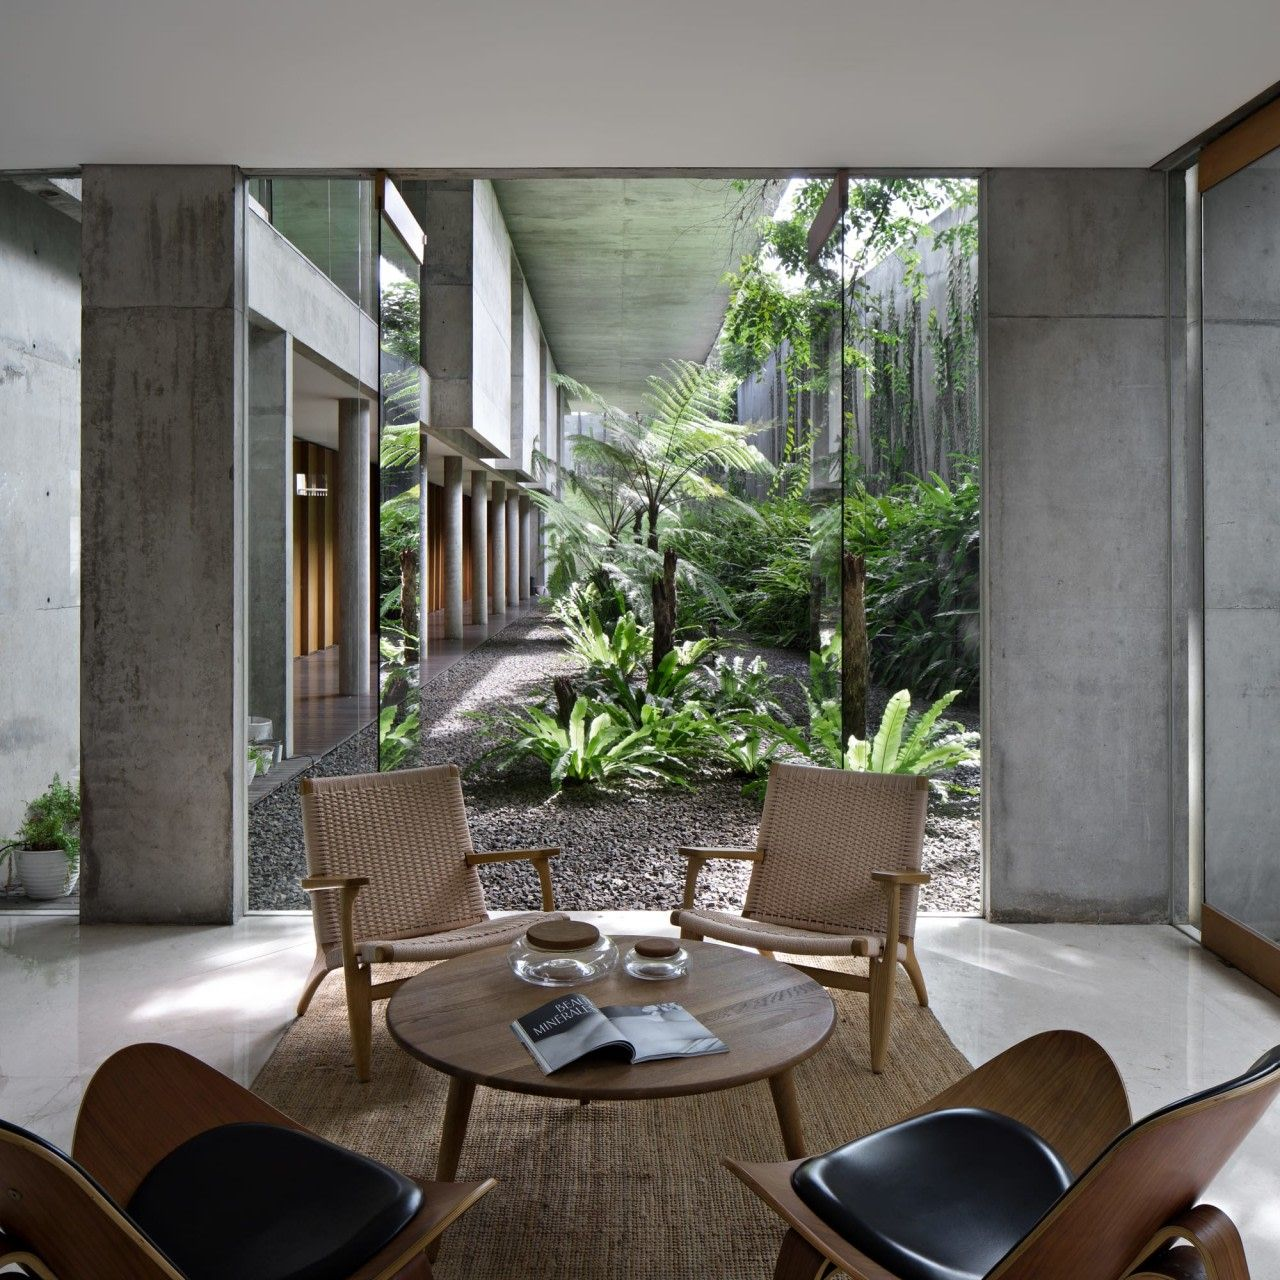 IH Residence In Bandung, Indonesia By Andra Matin